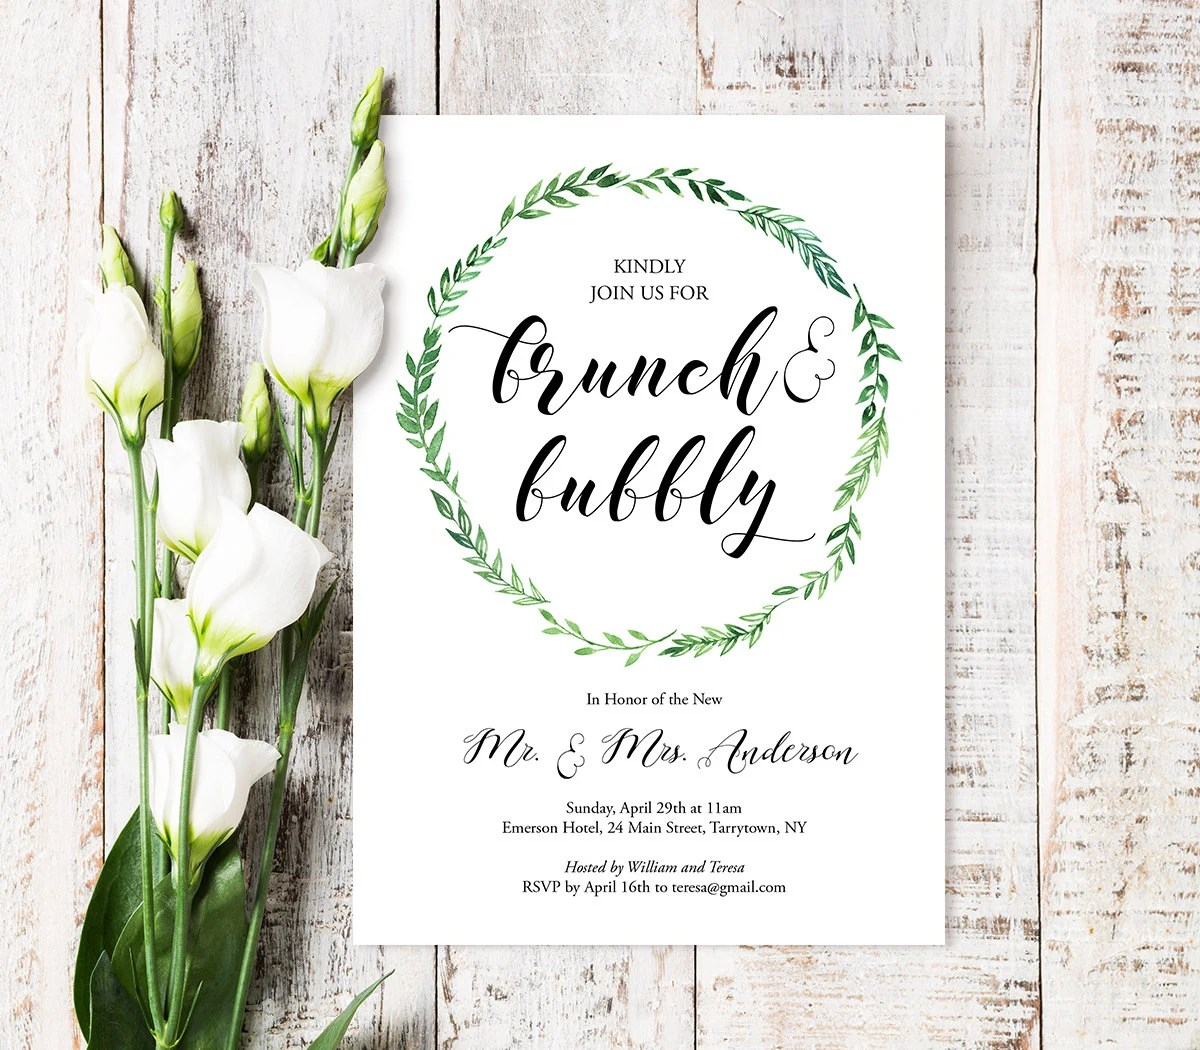 brunch bubbly invitation template wedding brunch invitations Brunch Bubbly Invitation Template Printable Post Wedding Brunch Invite Instant Download Editable Text PDF File Digital WB